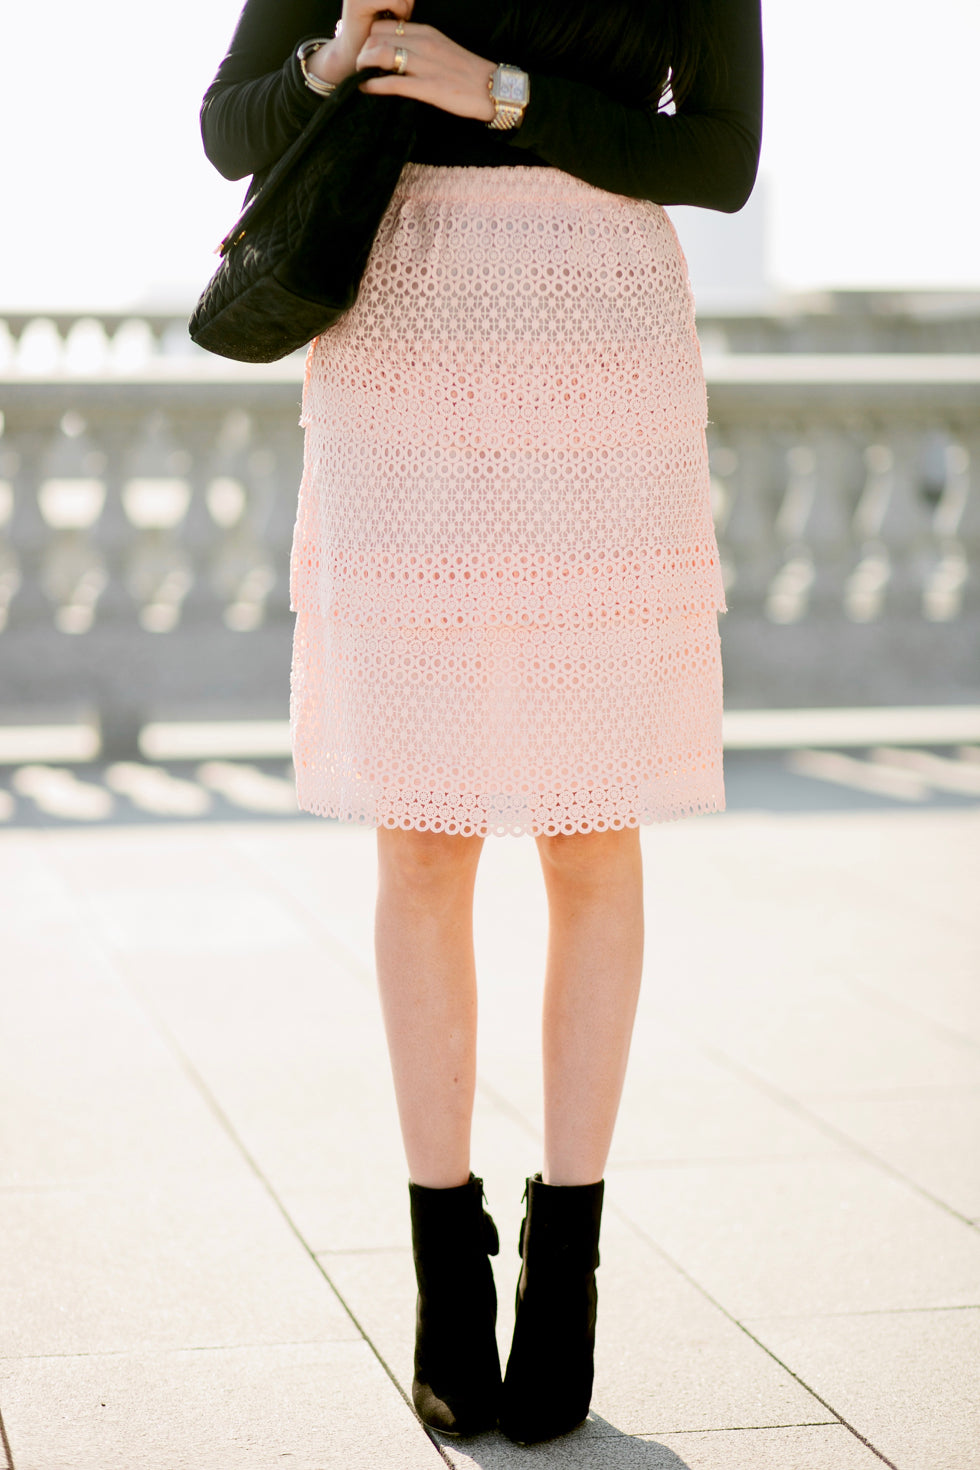 pink-lace-skirt-rachel-parcell-clothing-line - 5